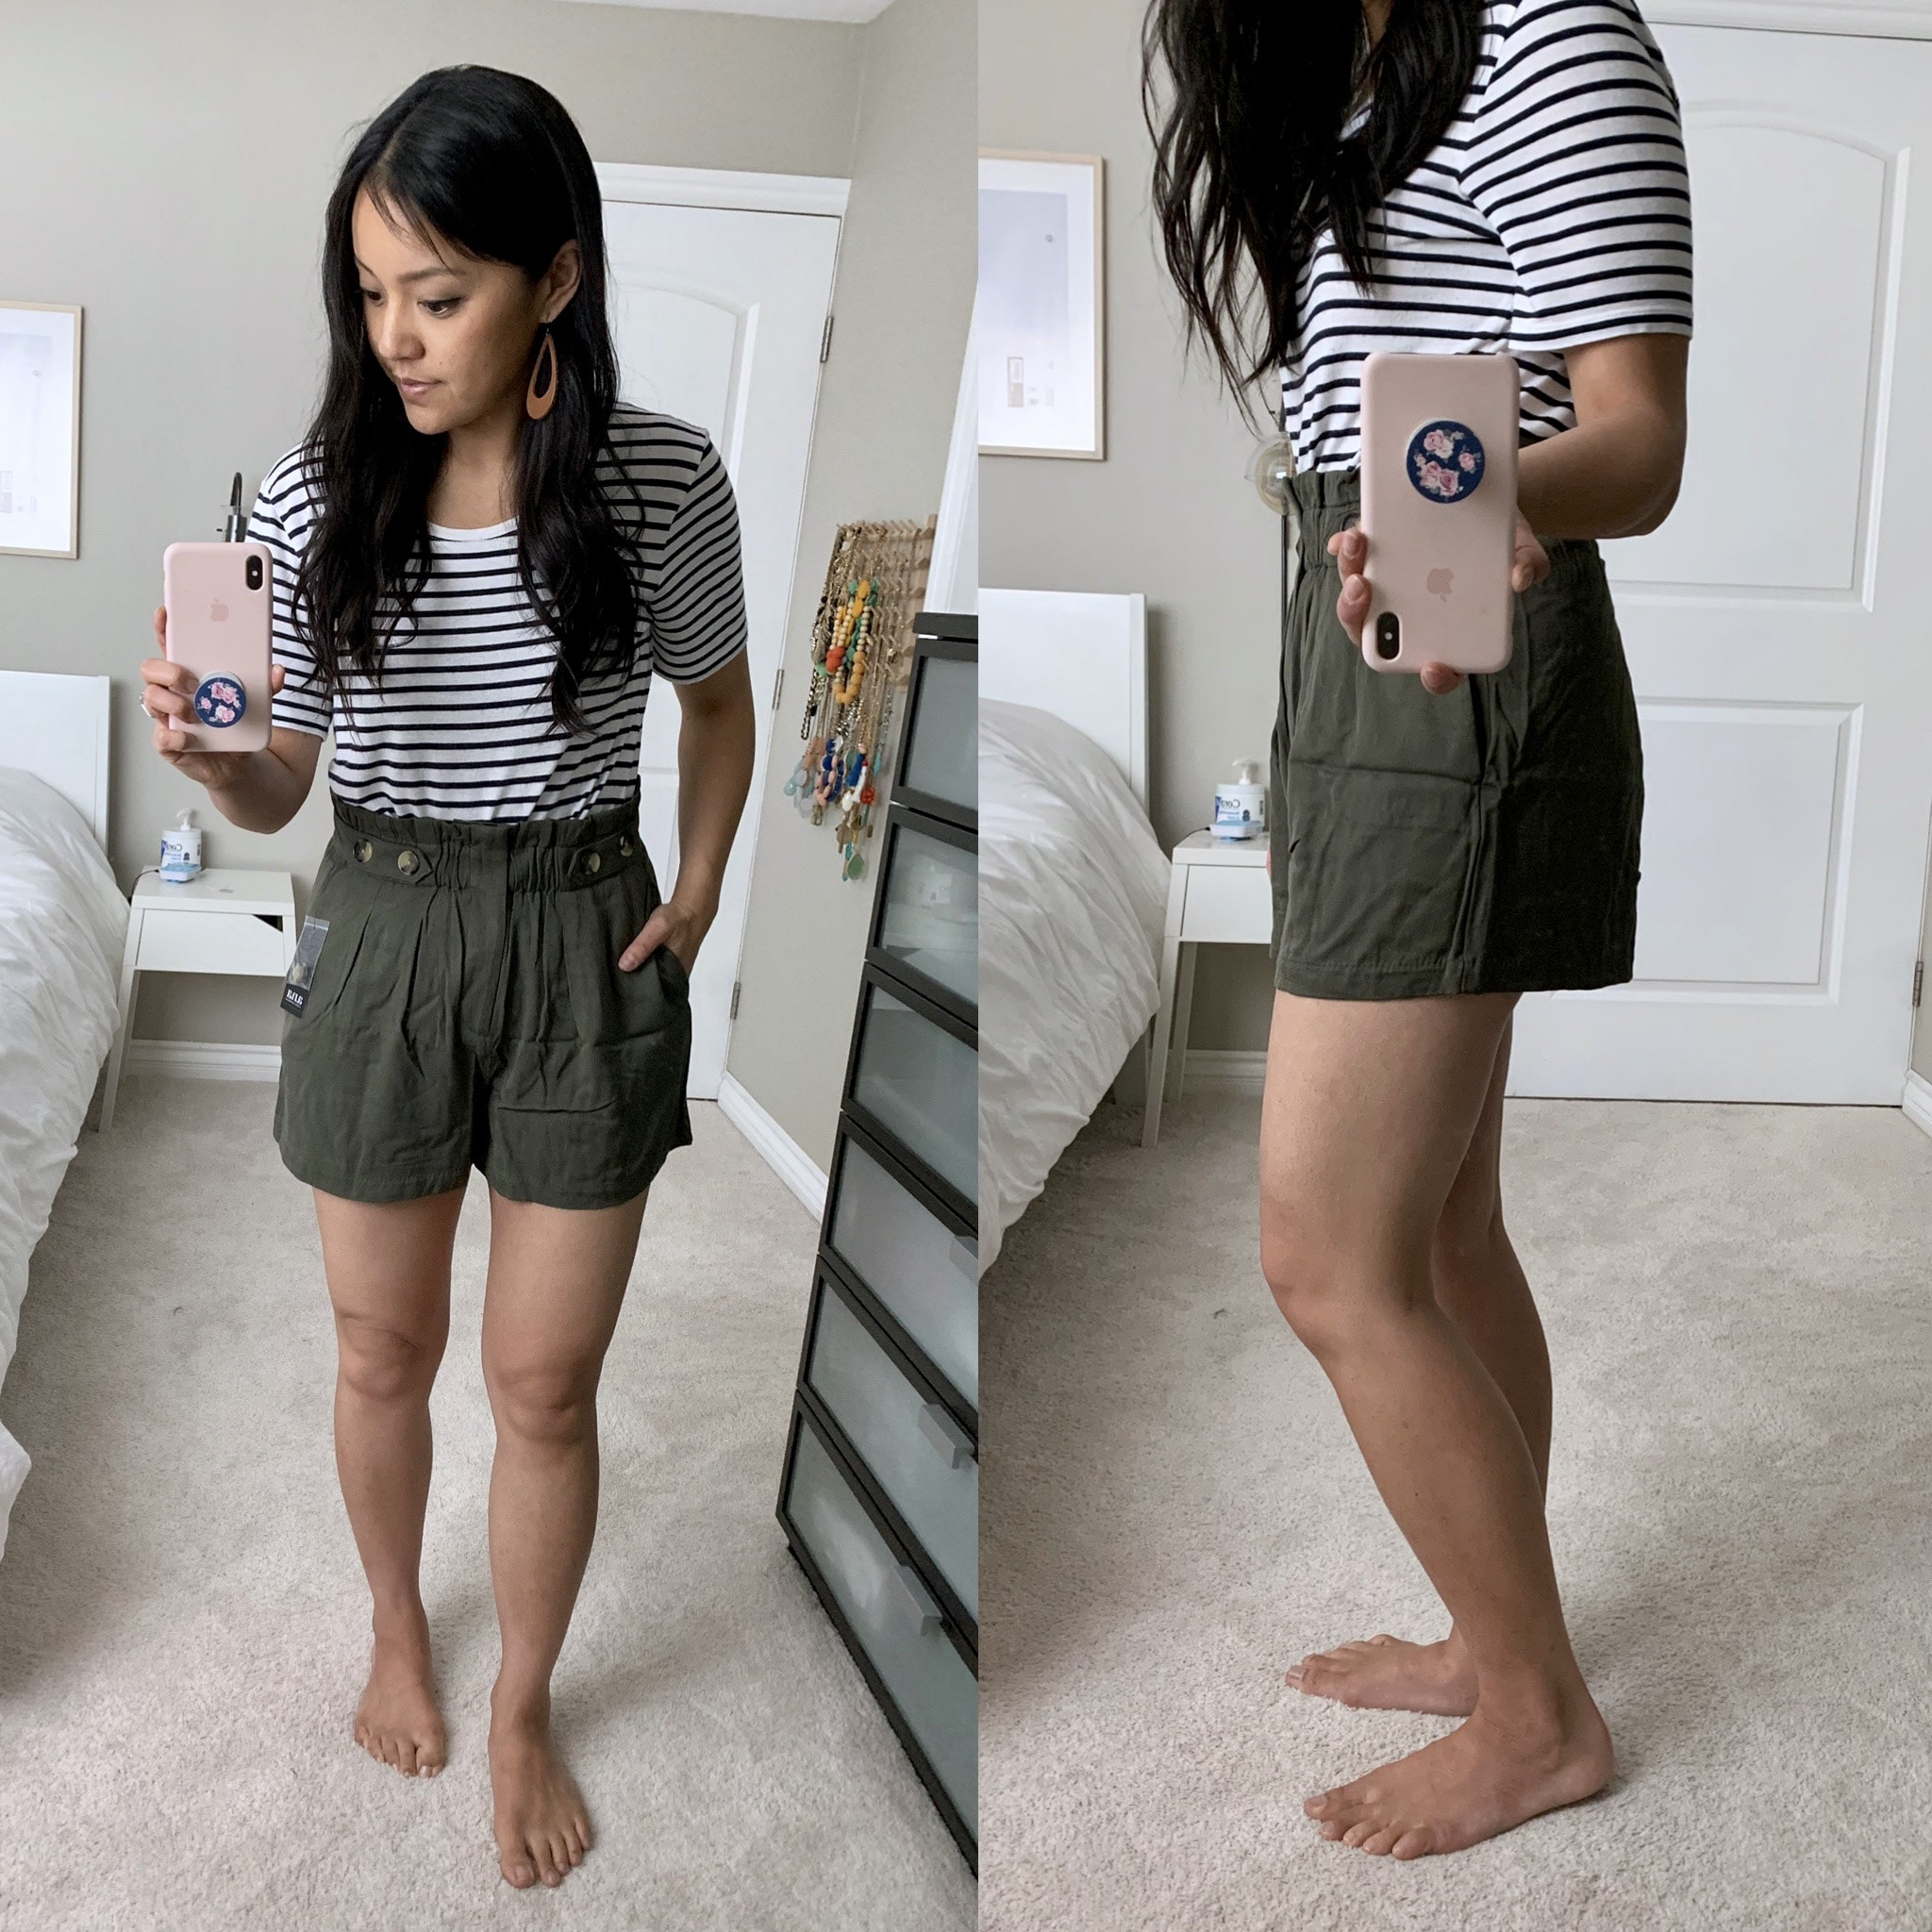 jcpenney paperbag shorts review